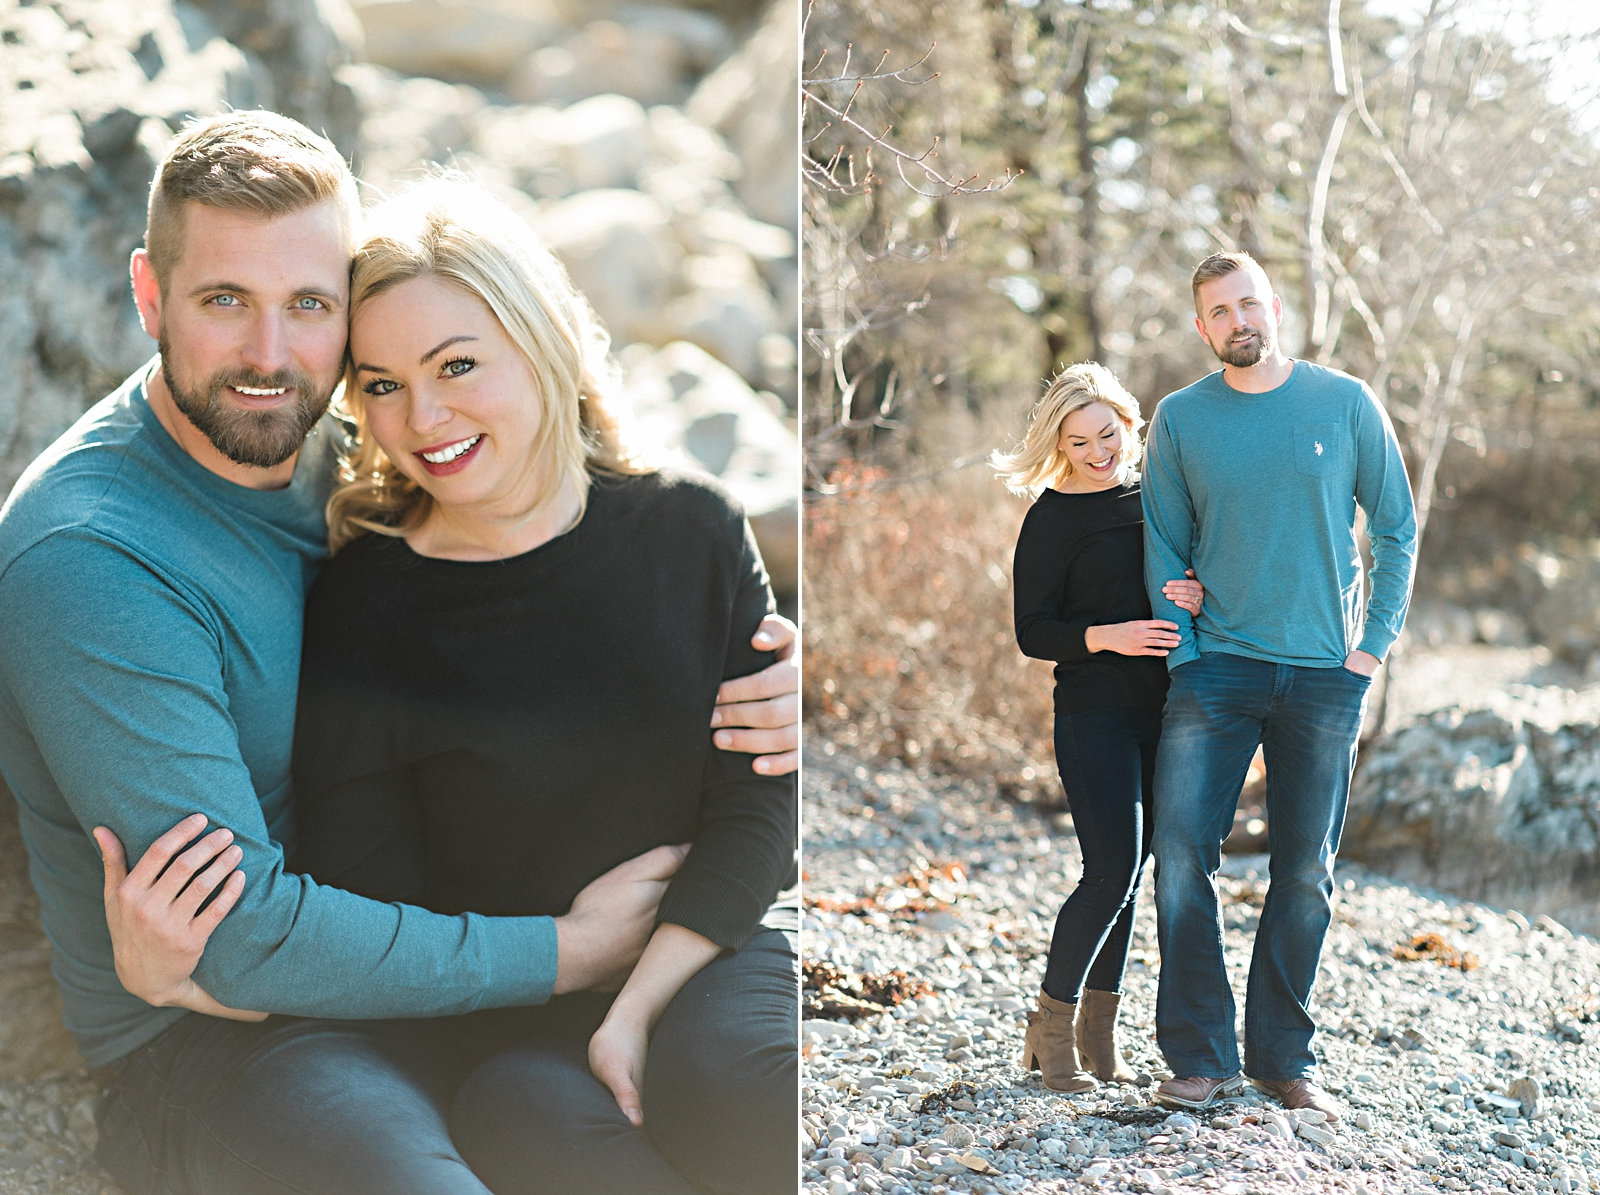 Halifax-Wedding-Photographer_Rhea&Craig_Halifax Engagement Photography_010.jpg